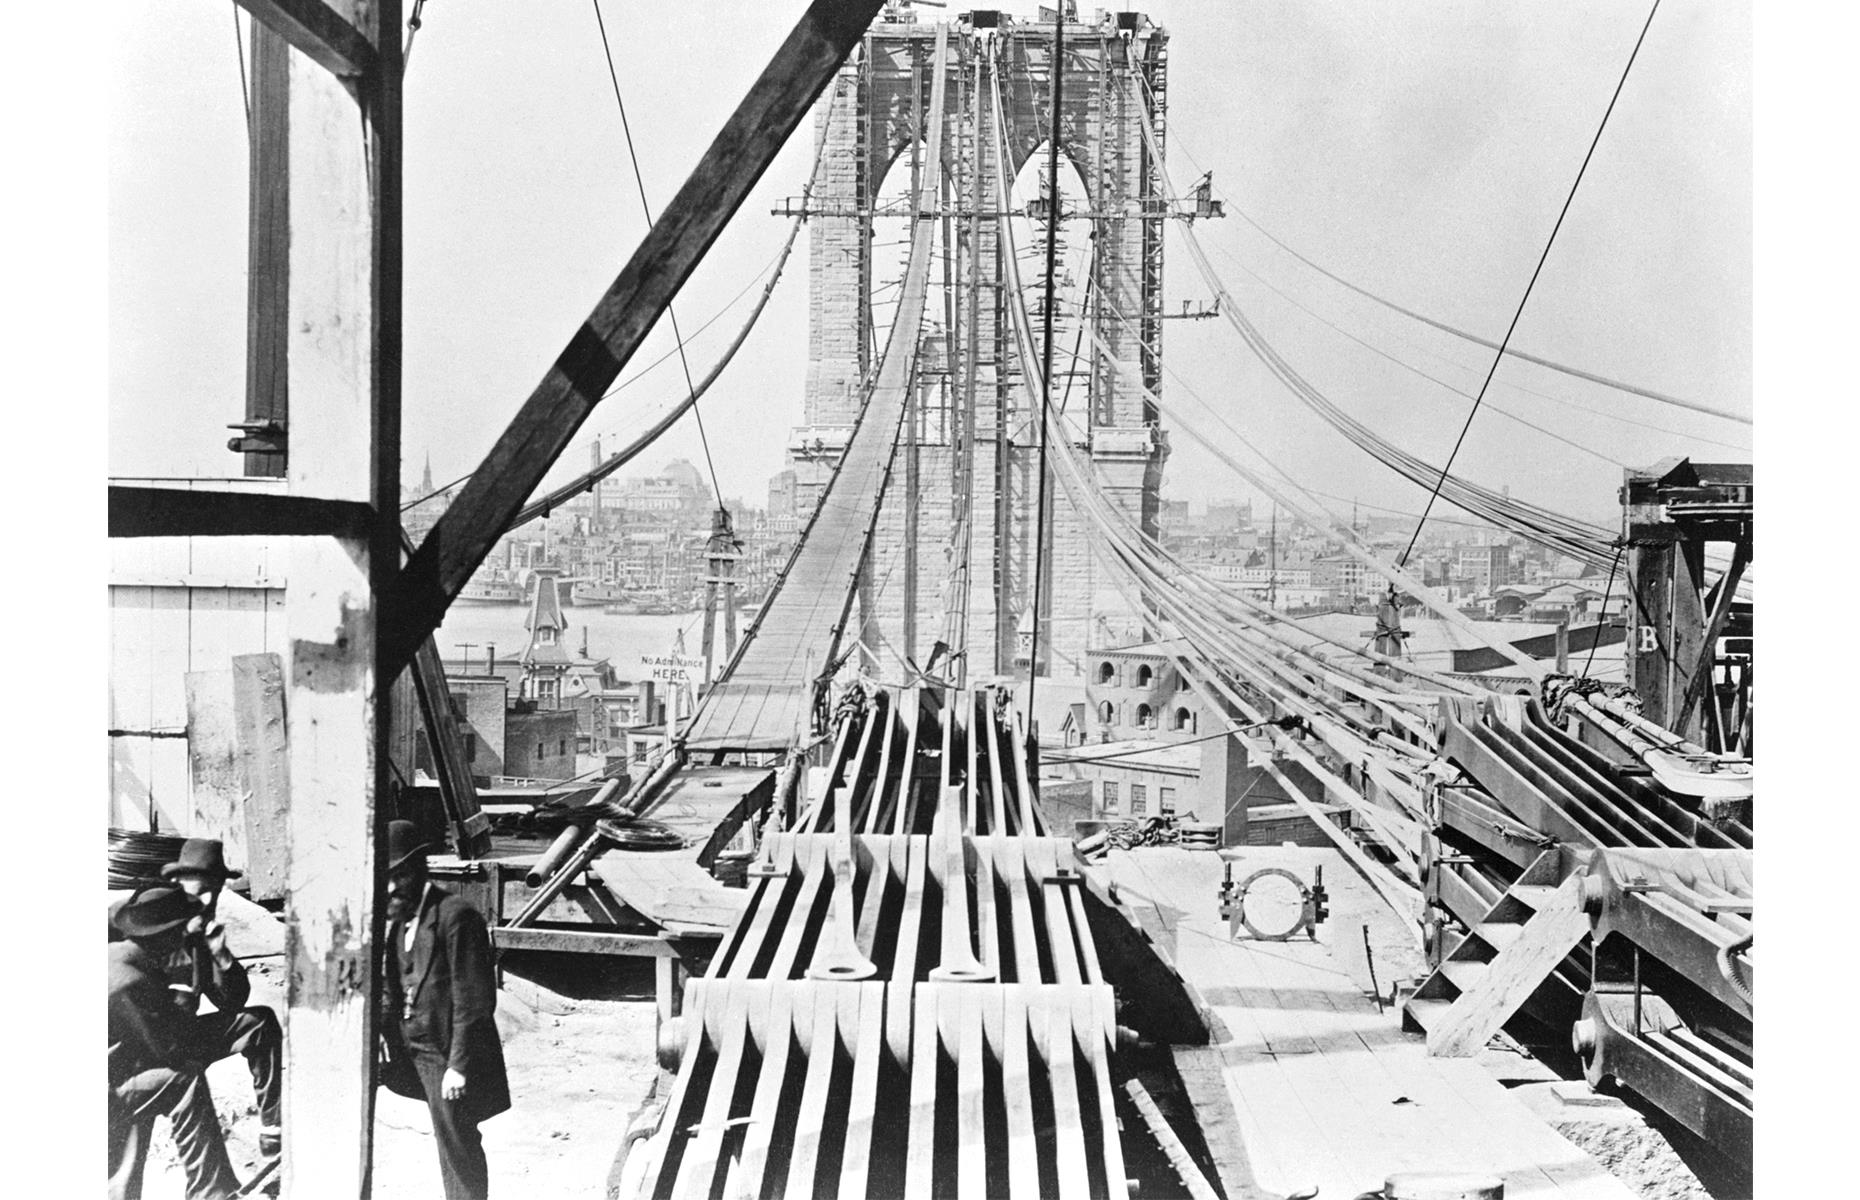 "Slide 12 of 41: Other workers died from falls or injuries and many suffered from decompression sickness or ""the bends"" – a result of pressurized air in the caissons the men worked in. Upon the landmark's completion, in 1883, it was the longest suspension bridge in the world, spanning around 1,600 feet (488m) from tower to tower. But even when the structure was finished, there were still fears over its safety. Circus owner P. T. Barnum famously led 21 elephants over the bridge in 1884 to allay the public's anxieties. It's seen here around a decade earlier, as cables were put into place in 1875."